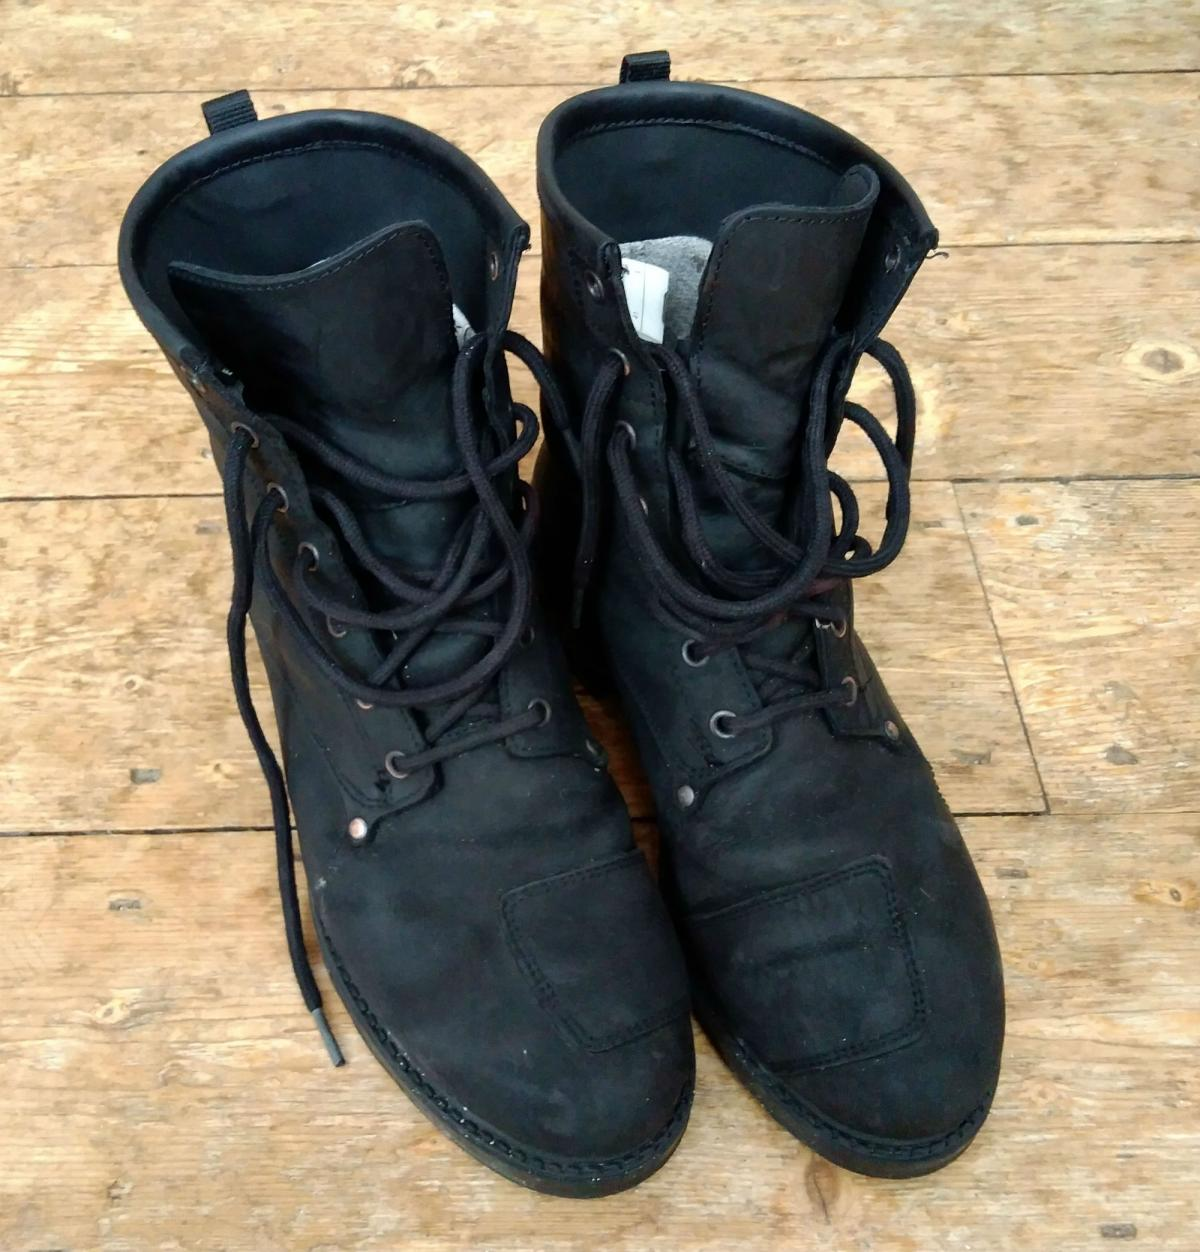 Size 42 Black TCX X-Blend Waterproof Motorcycle Boots